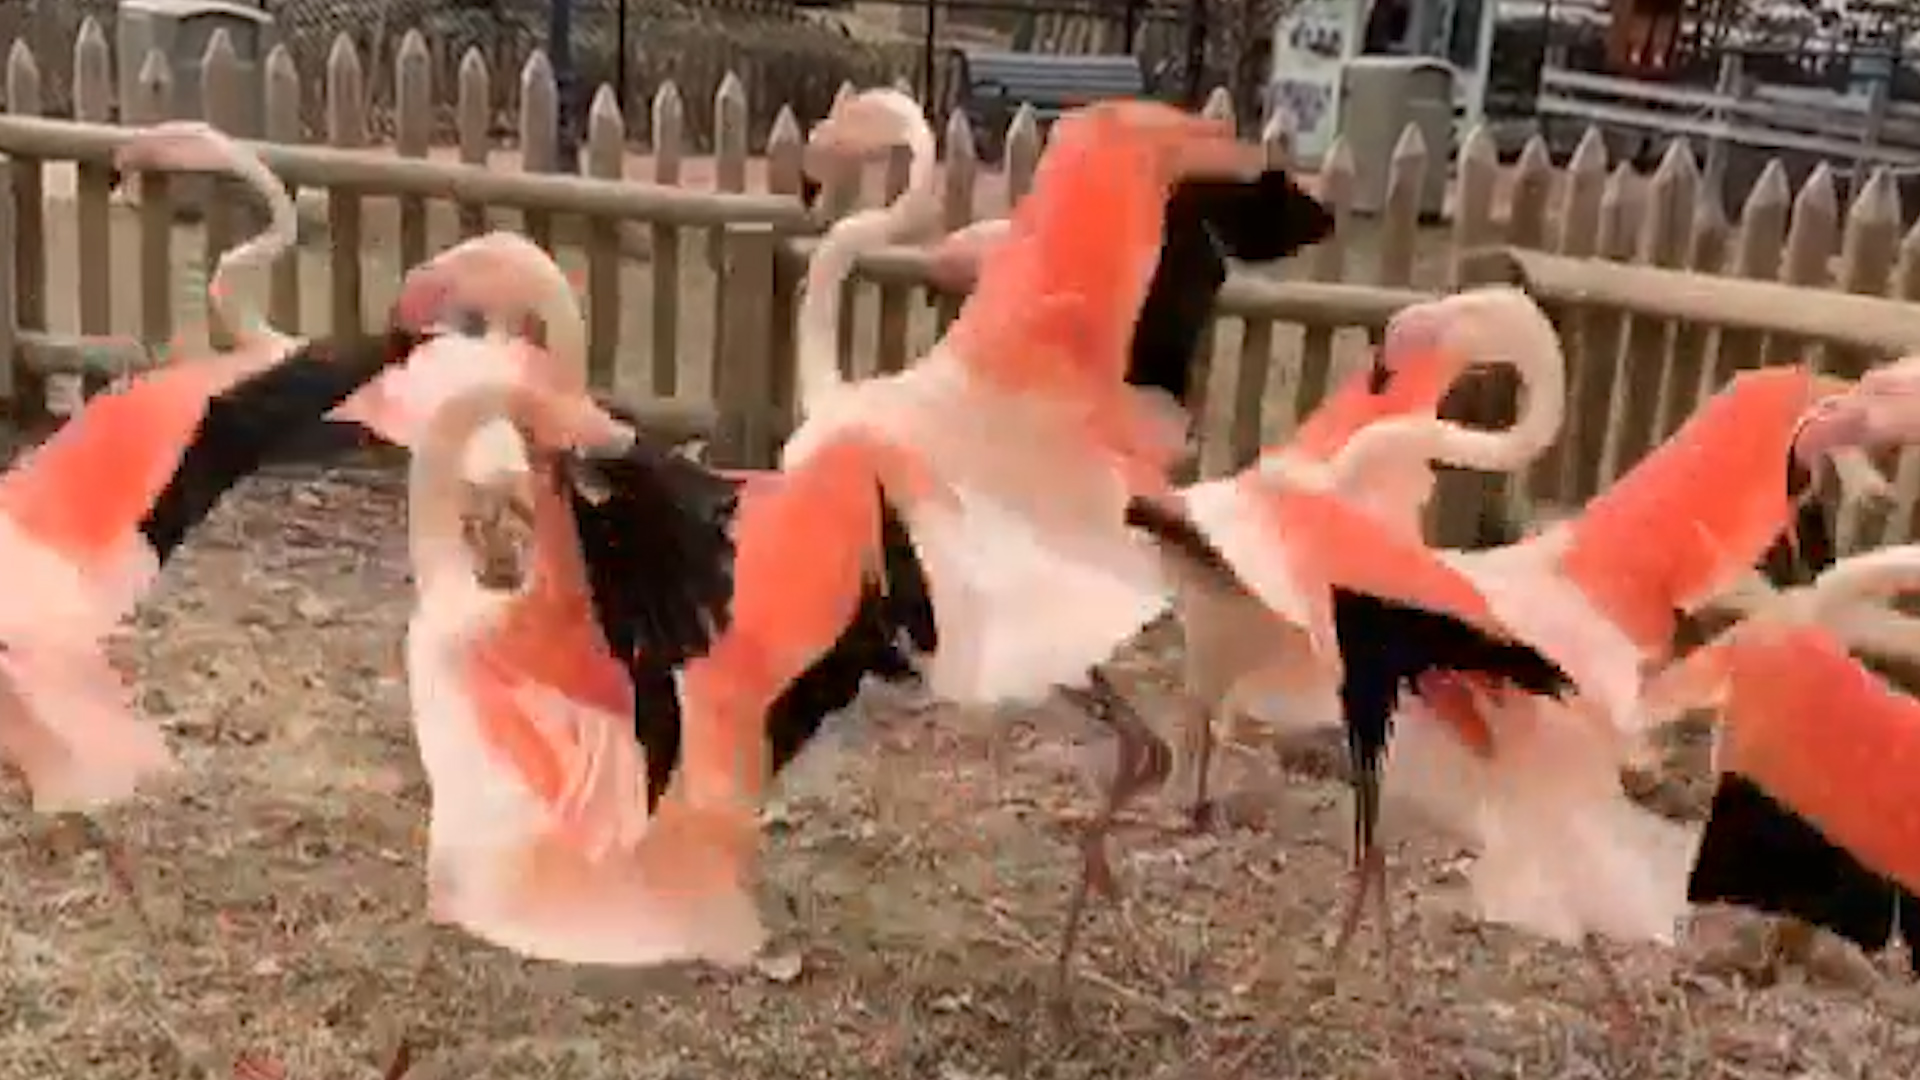 Zoo Forced To Euthanize Flamingo After Child Hits It With Rock